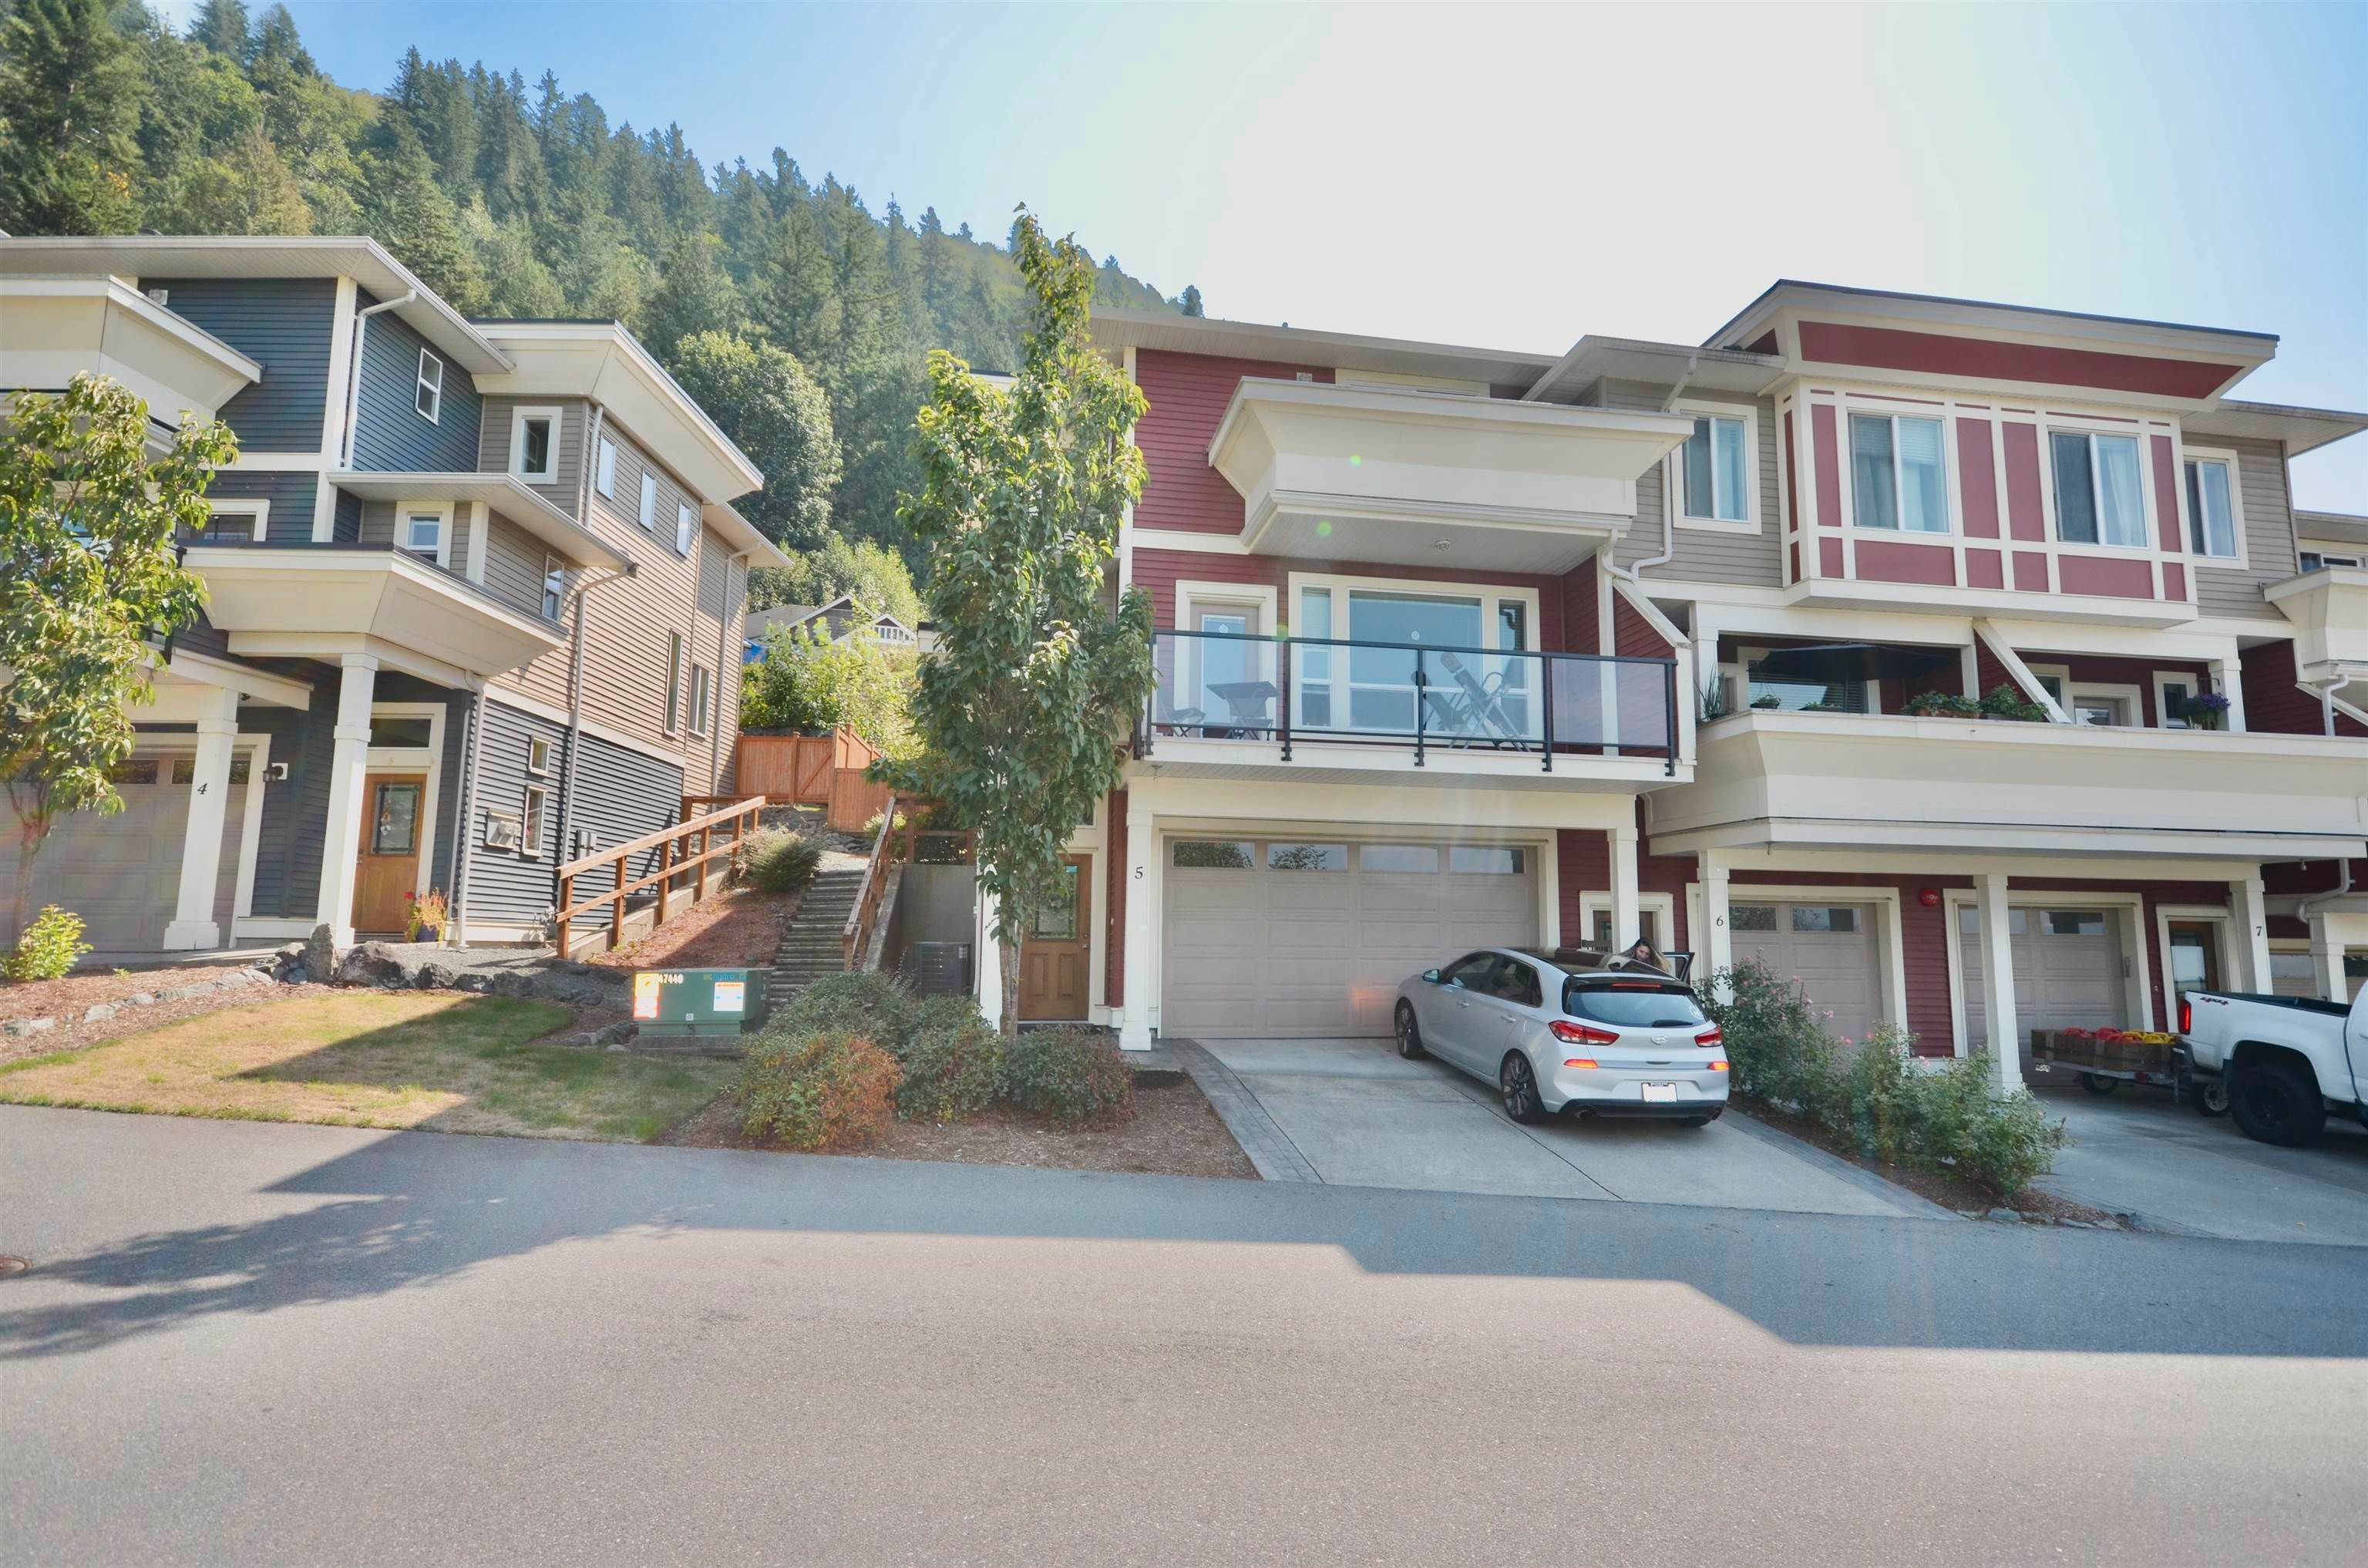 Main Photo: 5 47315 SYLVAN Drive in Chilliwack: Promontory Townhouse for sale (Sardis)  : MLS®# R2612182